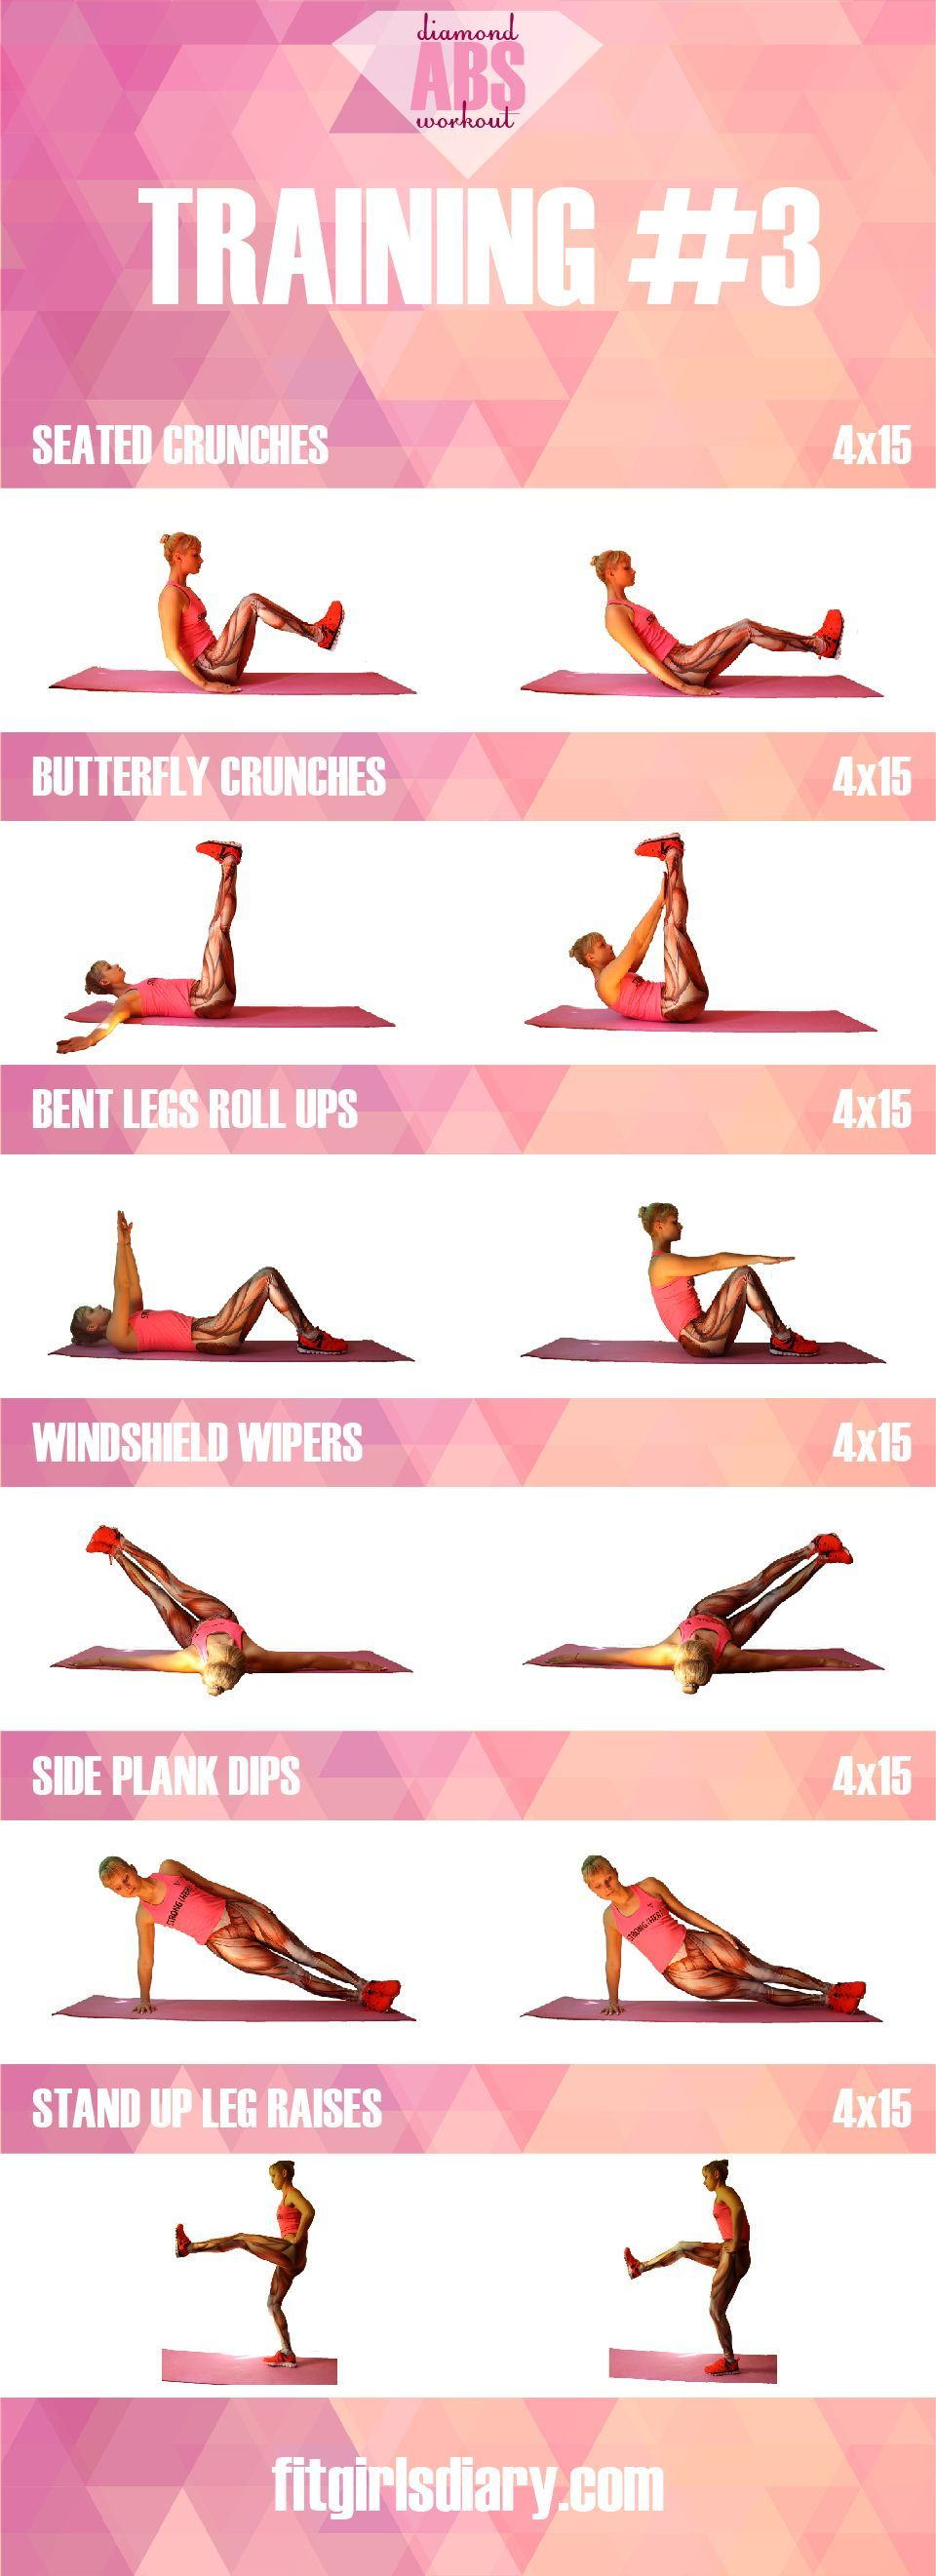 Diamond Abs Workout - Collection Of The Best Ab Exercises for ...